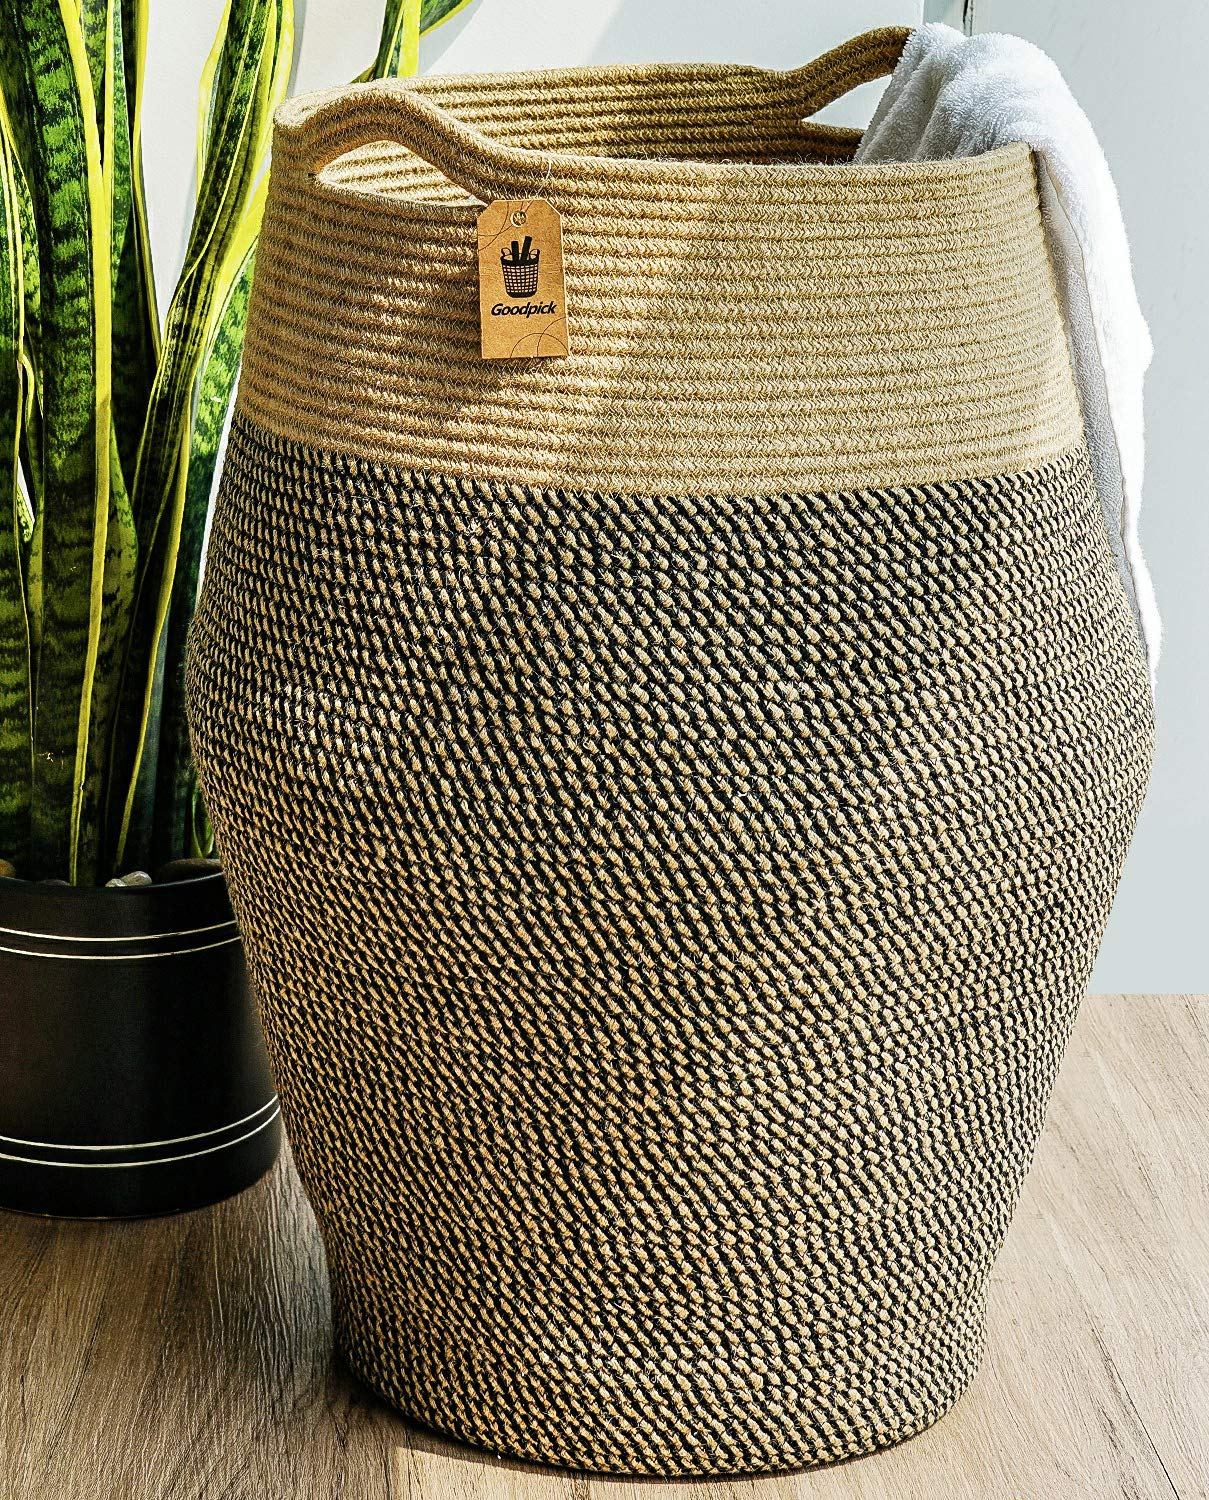 Goodpick Tall Laundry Hamper Woven Jute Rope Dirty Clothes Hamper Modern Hamper Basket Large in Laundry Room, 25.6 Height